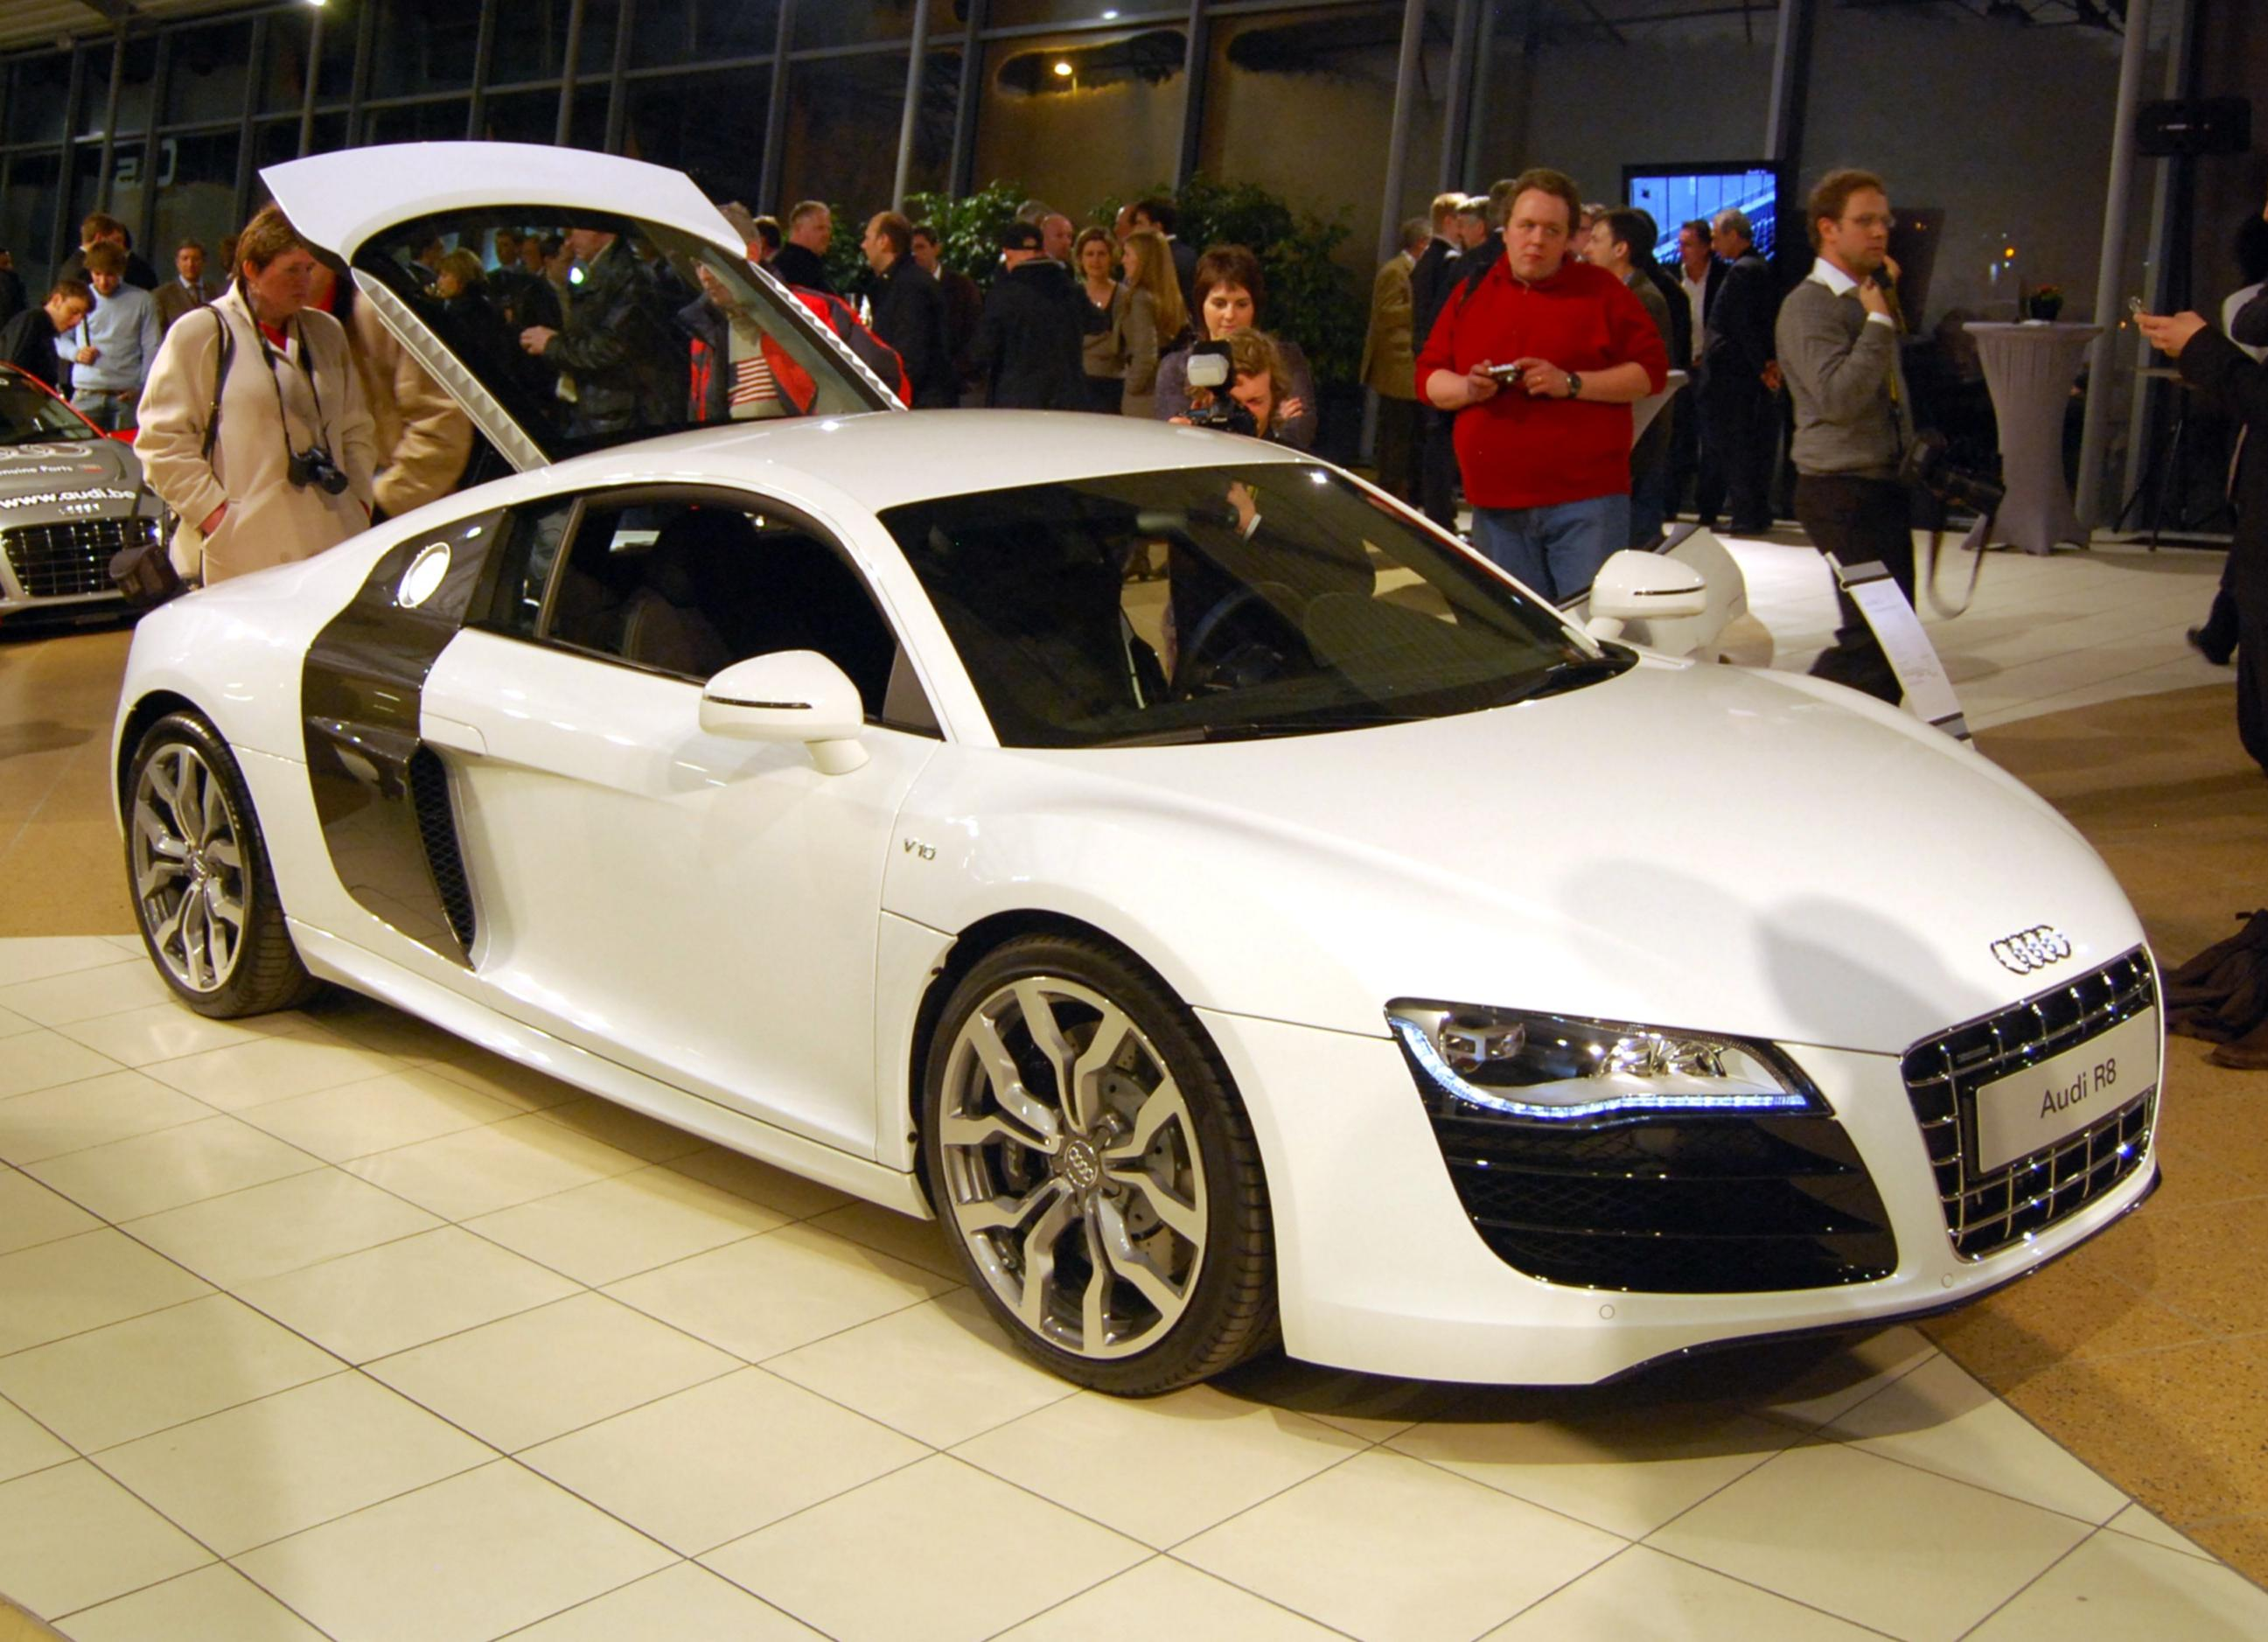 file audi r8 v10 wikimedia commons. Black Bedroom Furniture Sets. Home Design Ideas